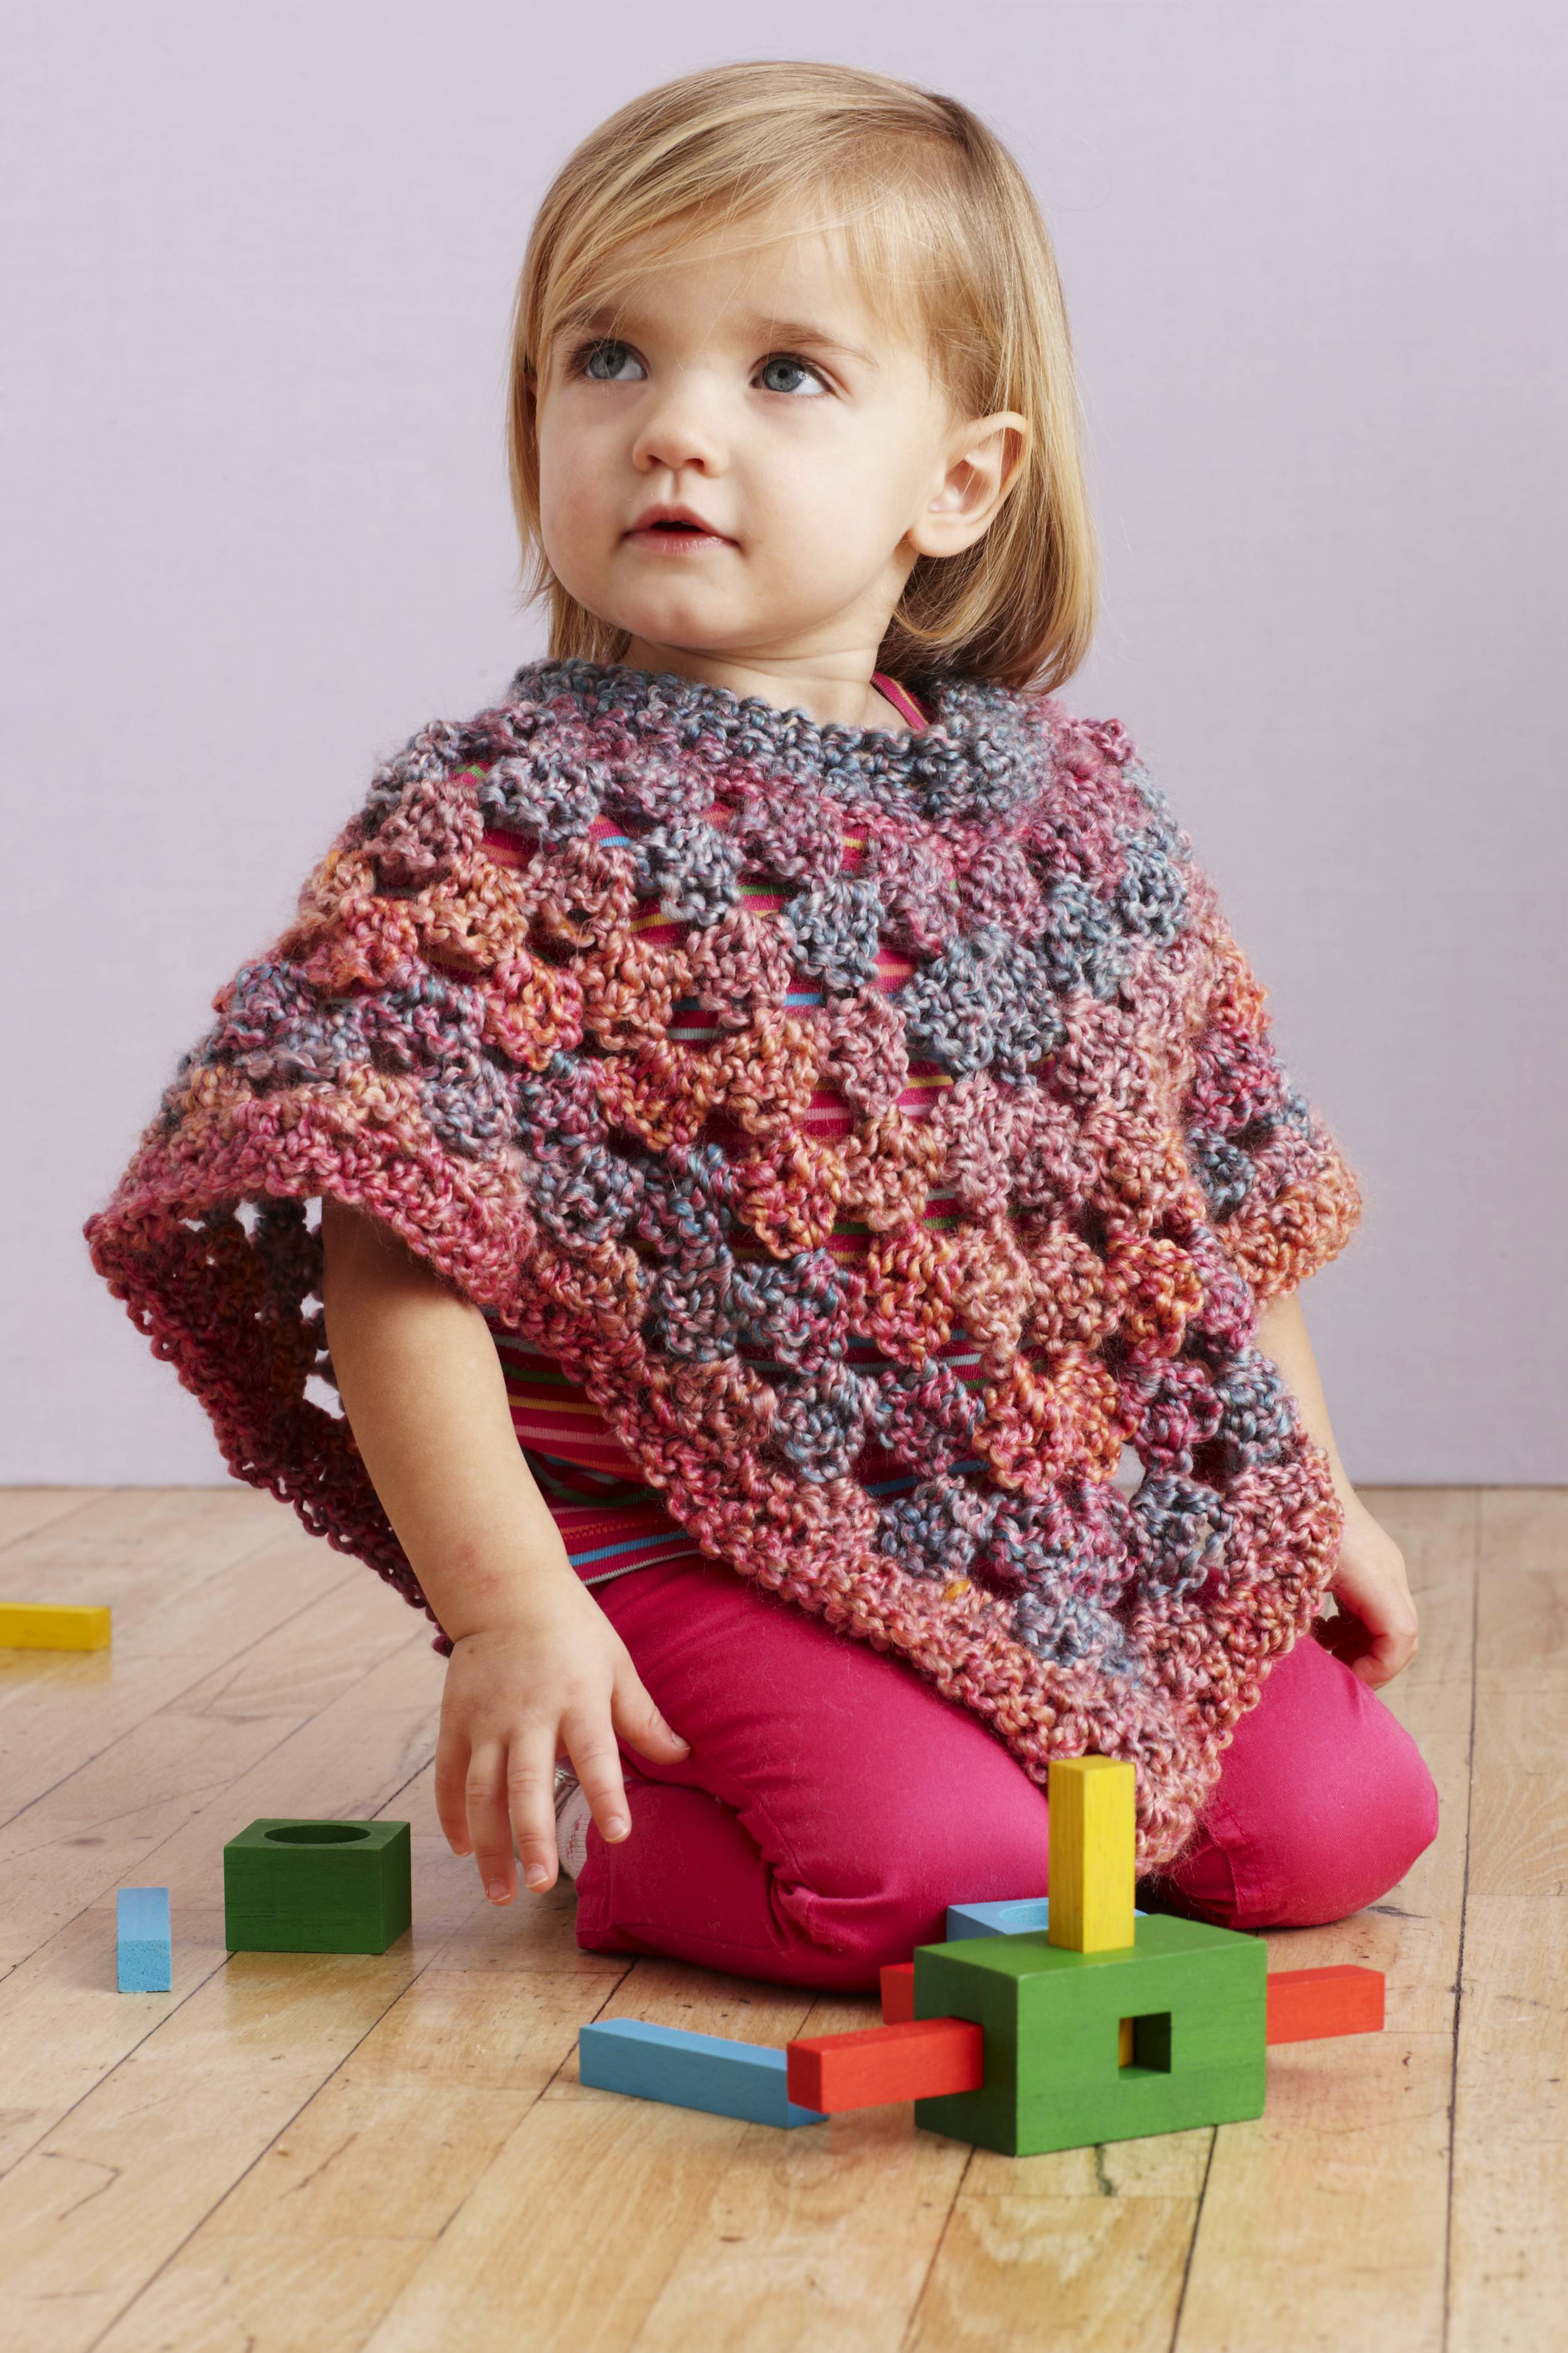 List of Free Crochet Patterns for Toddlers Ponchos 39 Crochet Poncho Patterns The Funky Stitch